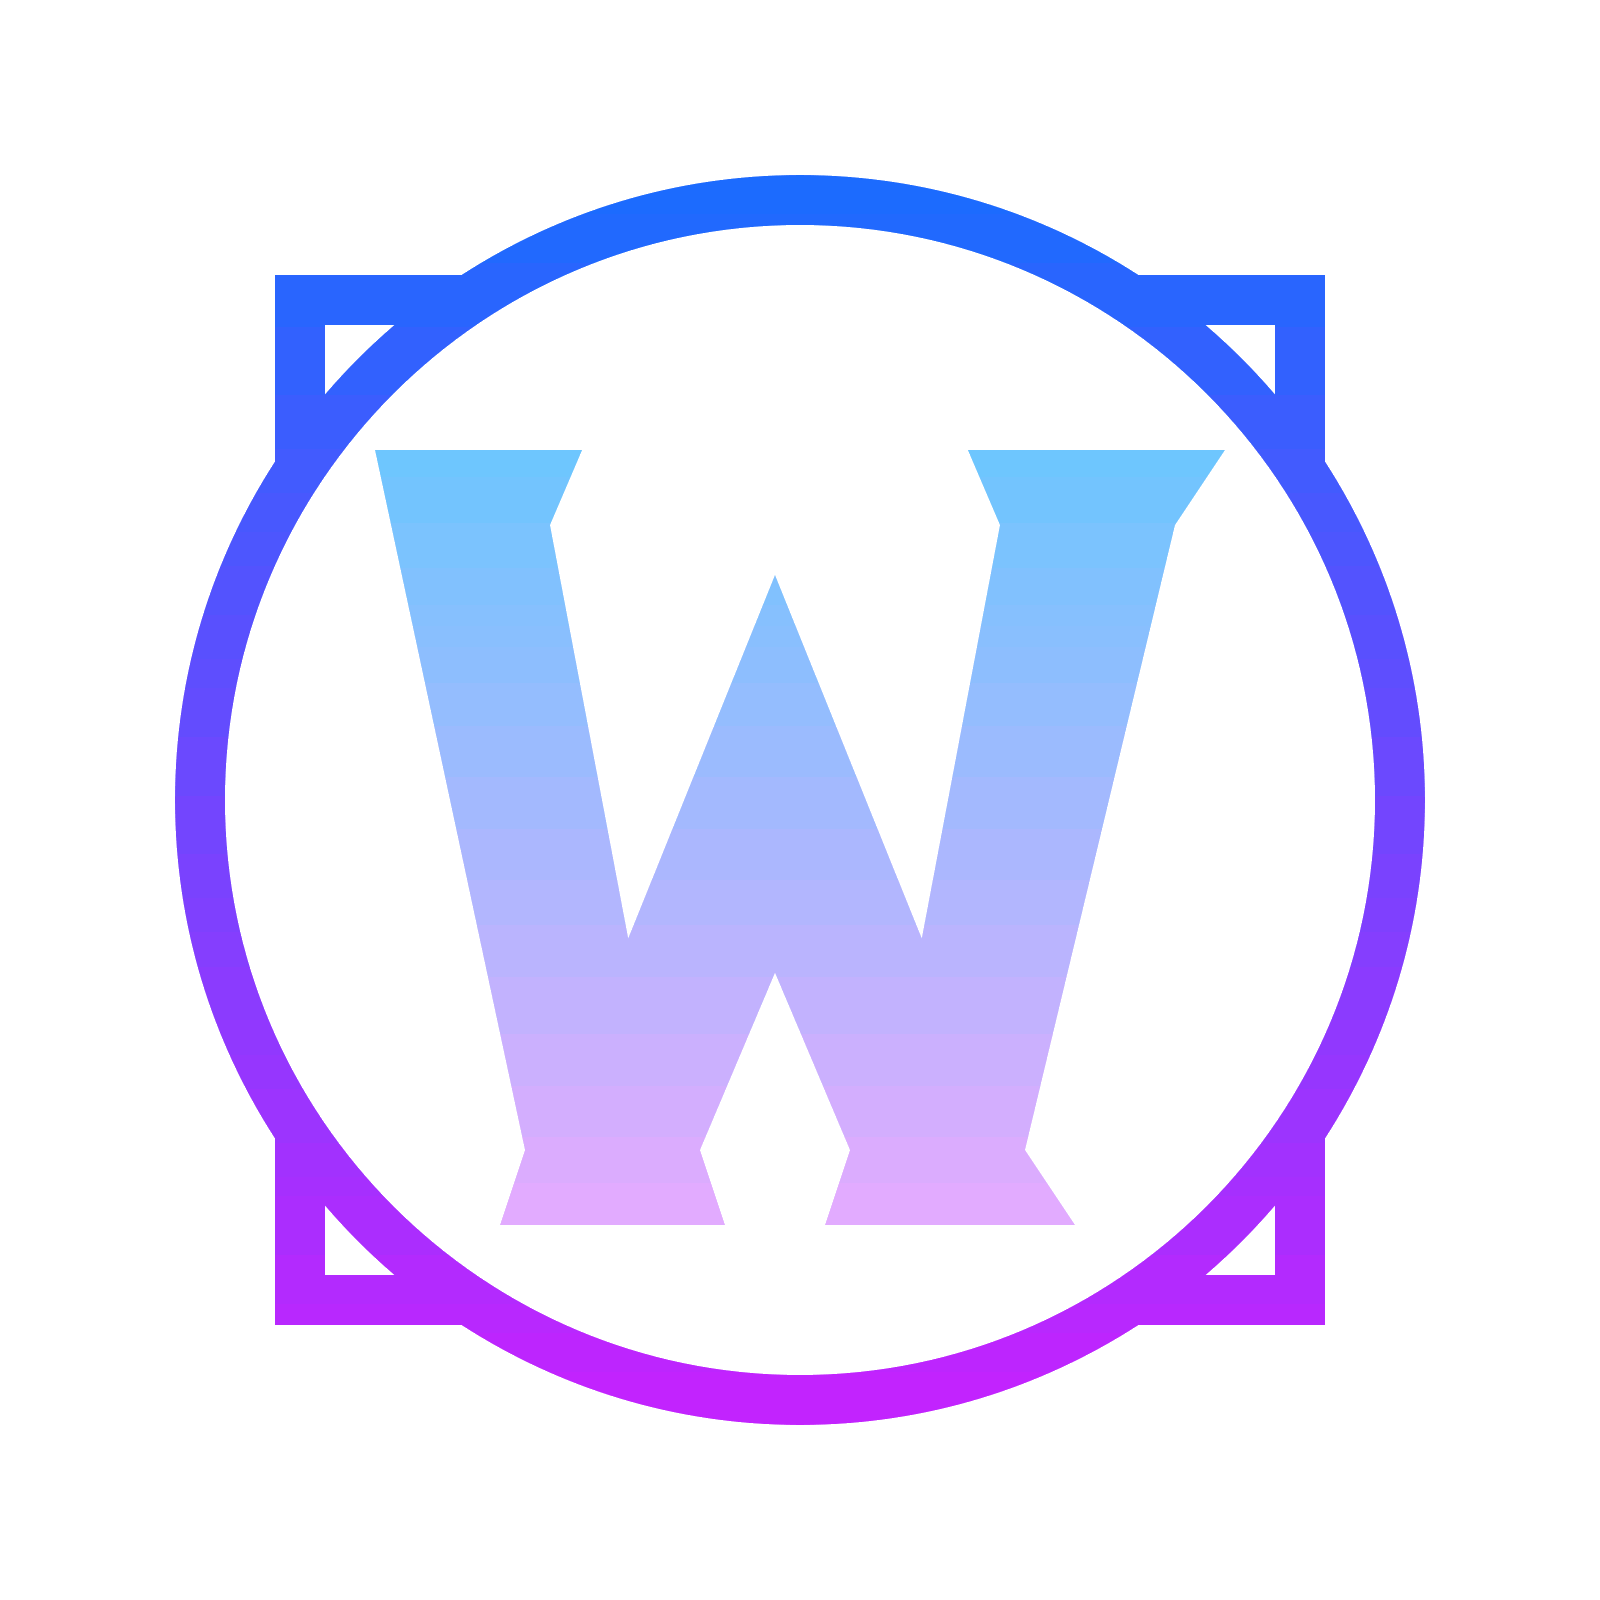 World vector png. Of warcraft icon free